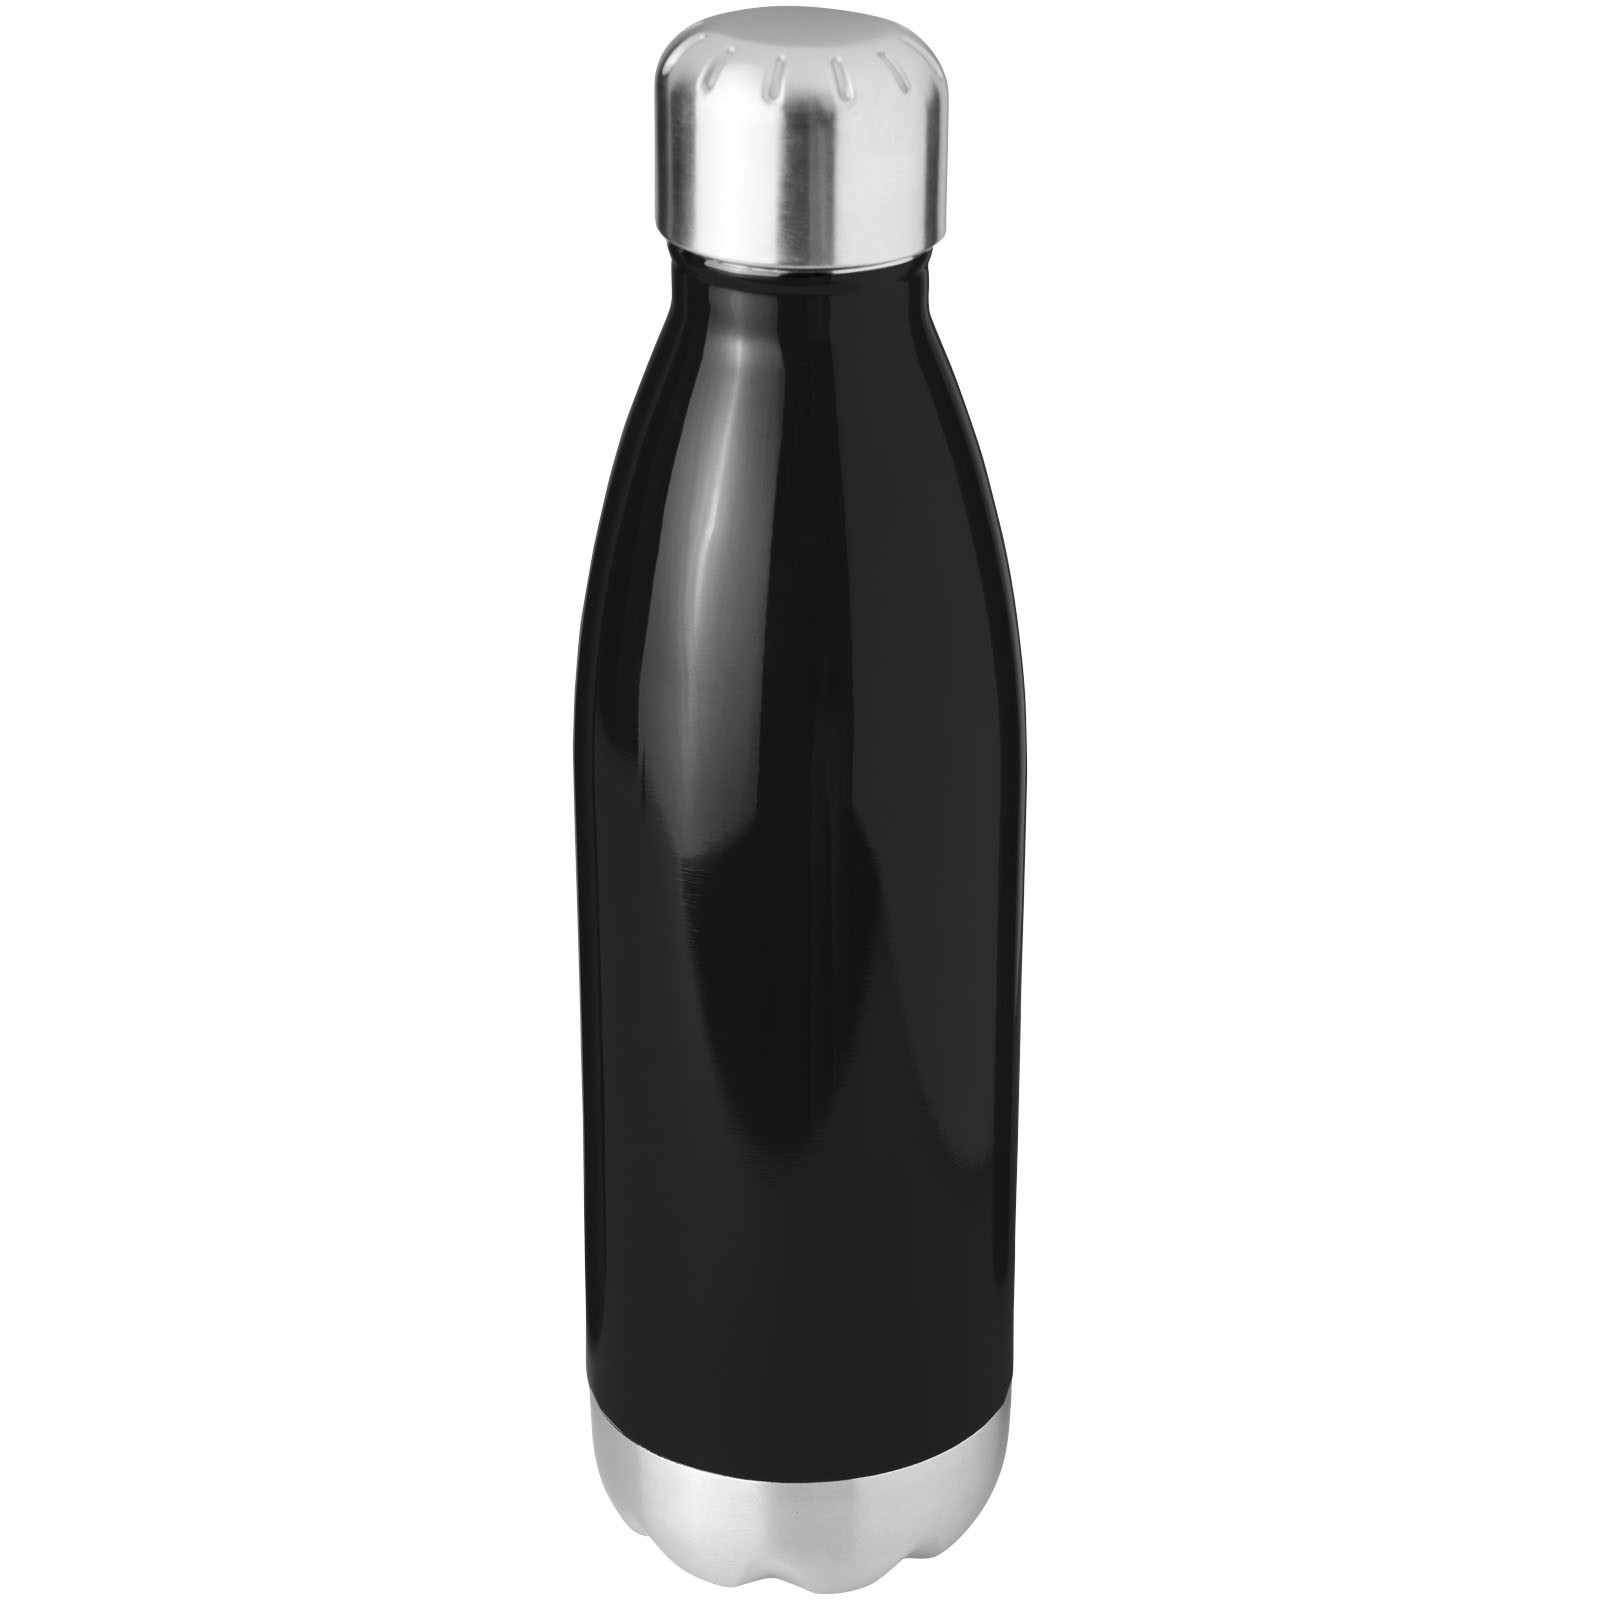 Arsenal 510 ml vacuum insulated bottle - Solid black